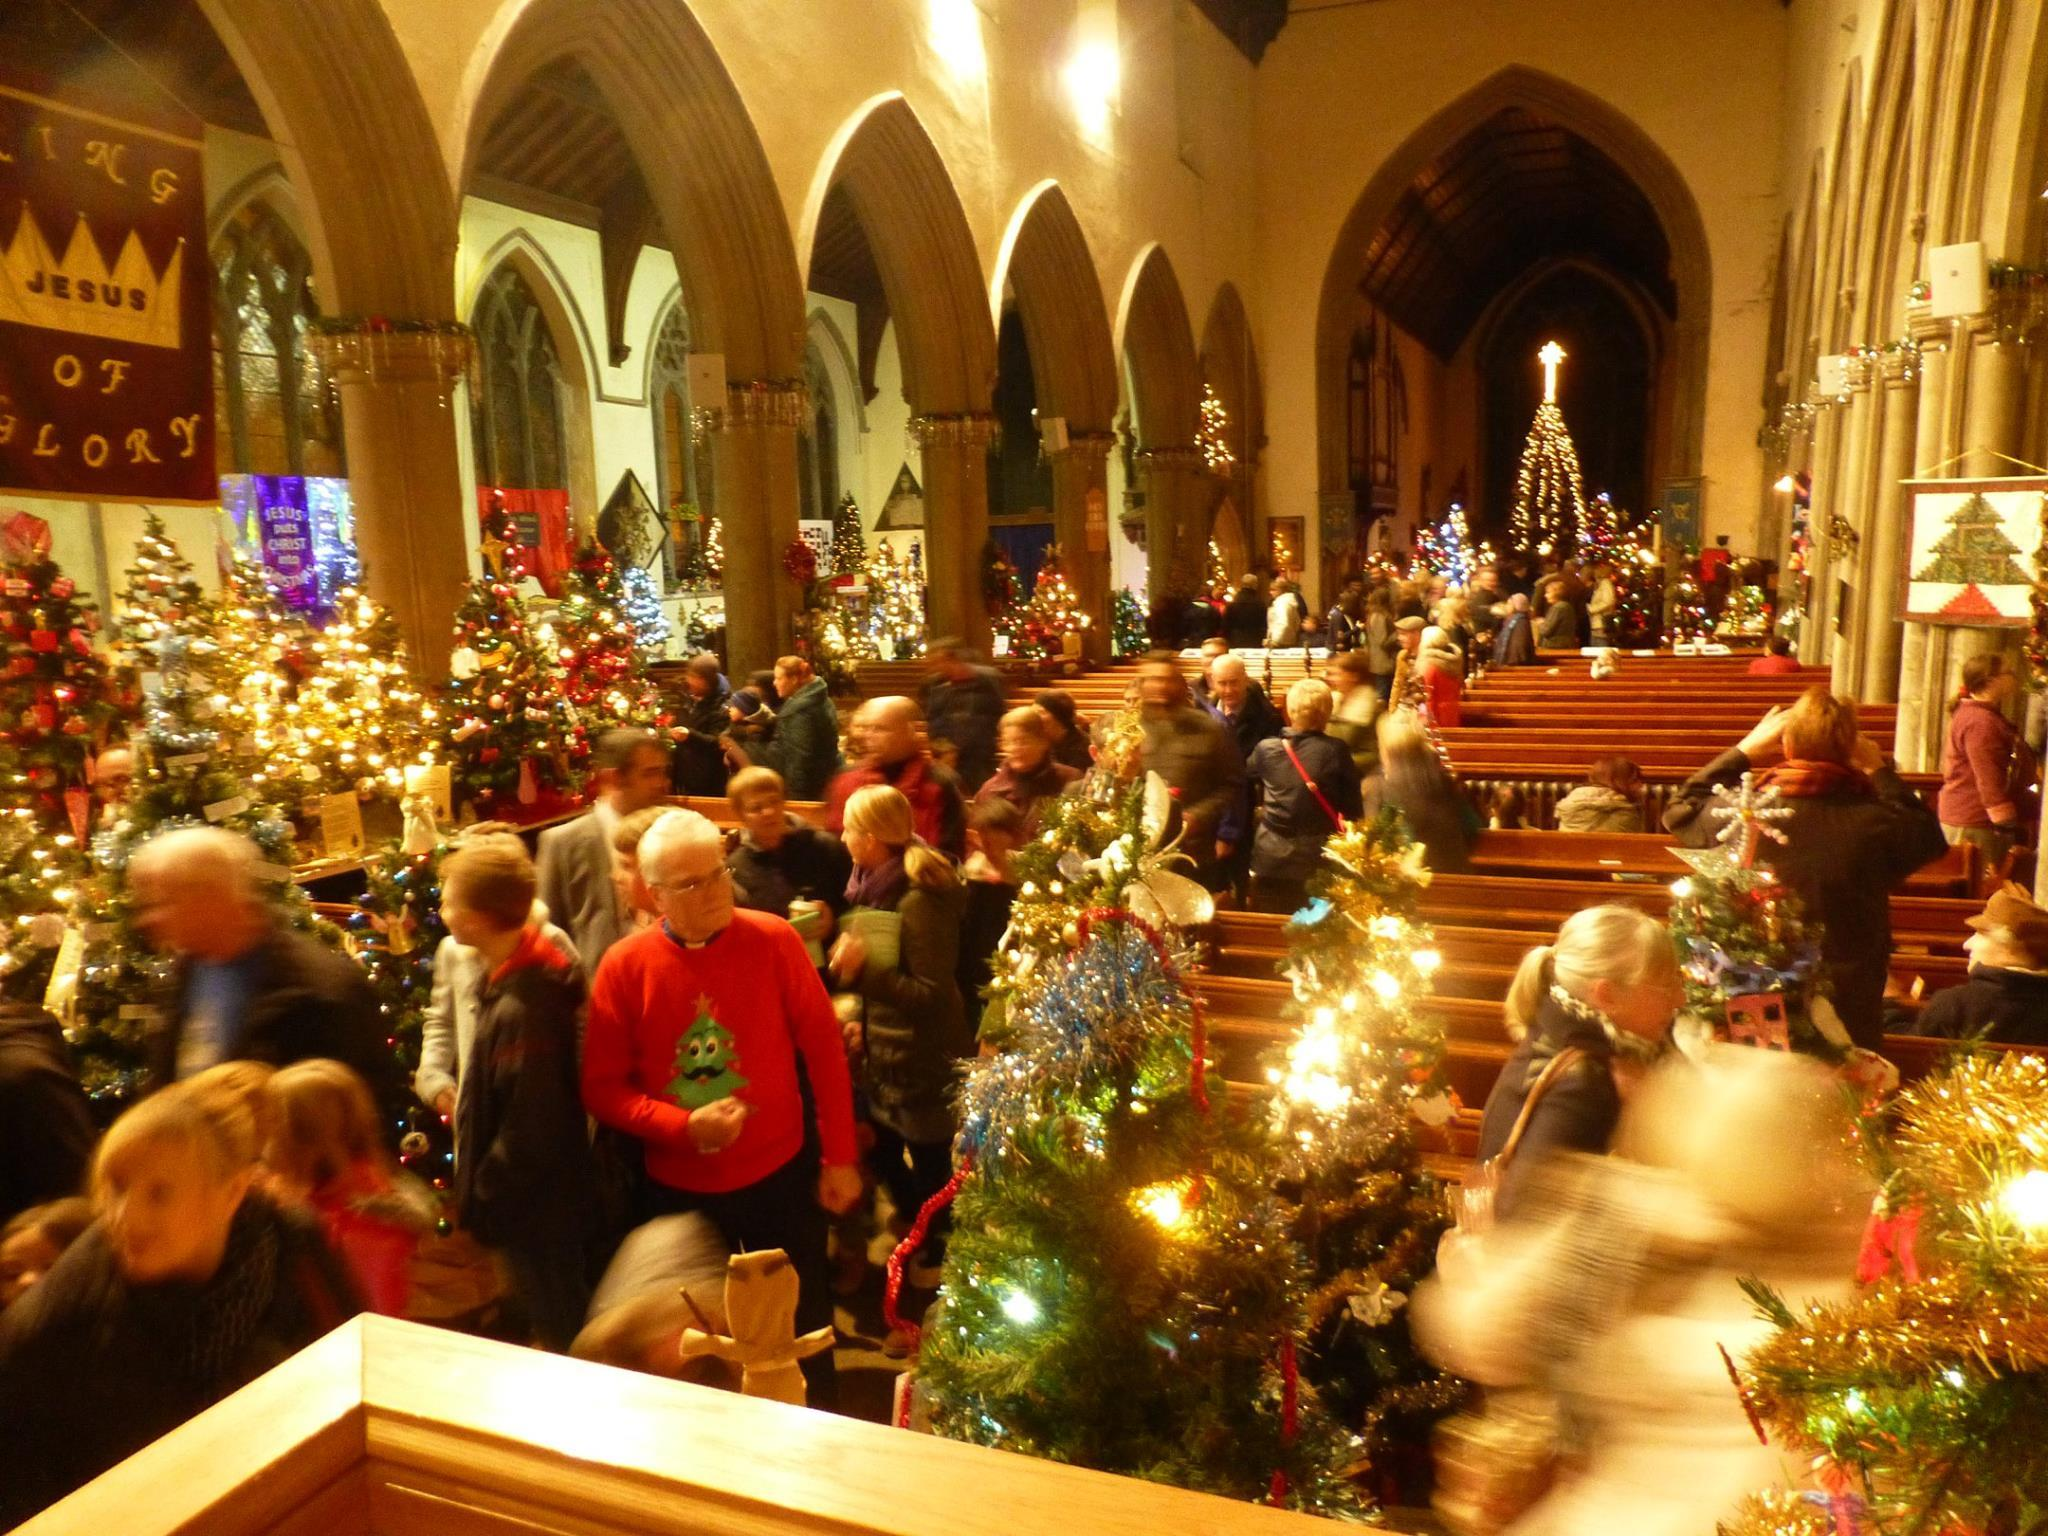 Stowmarket Christmas Tree Festival - until December 5